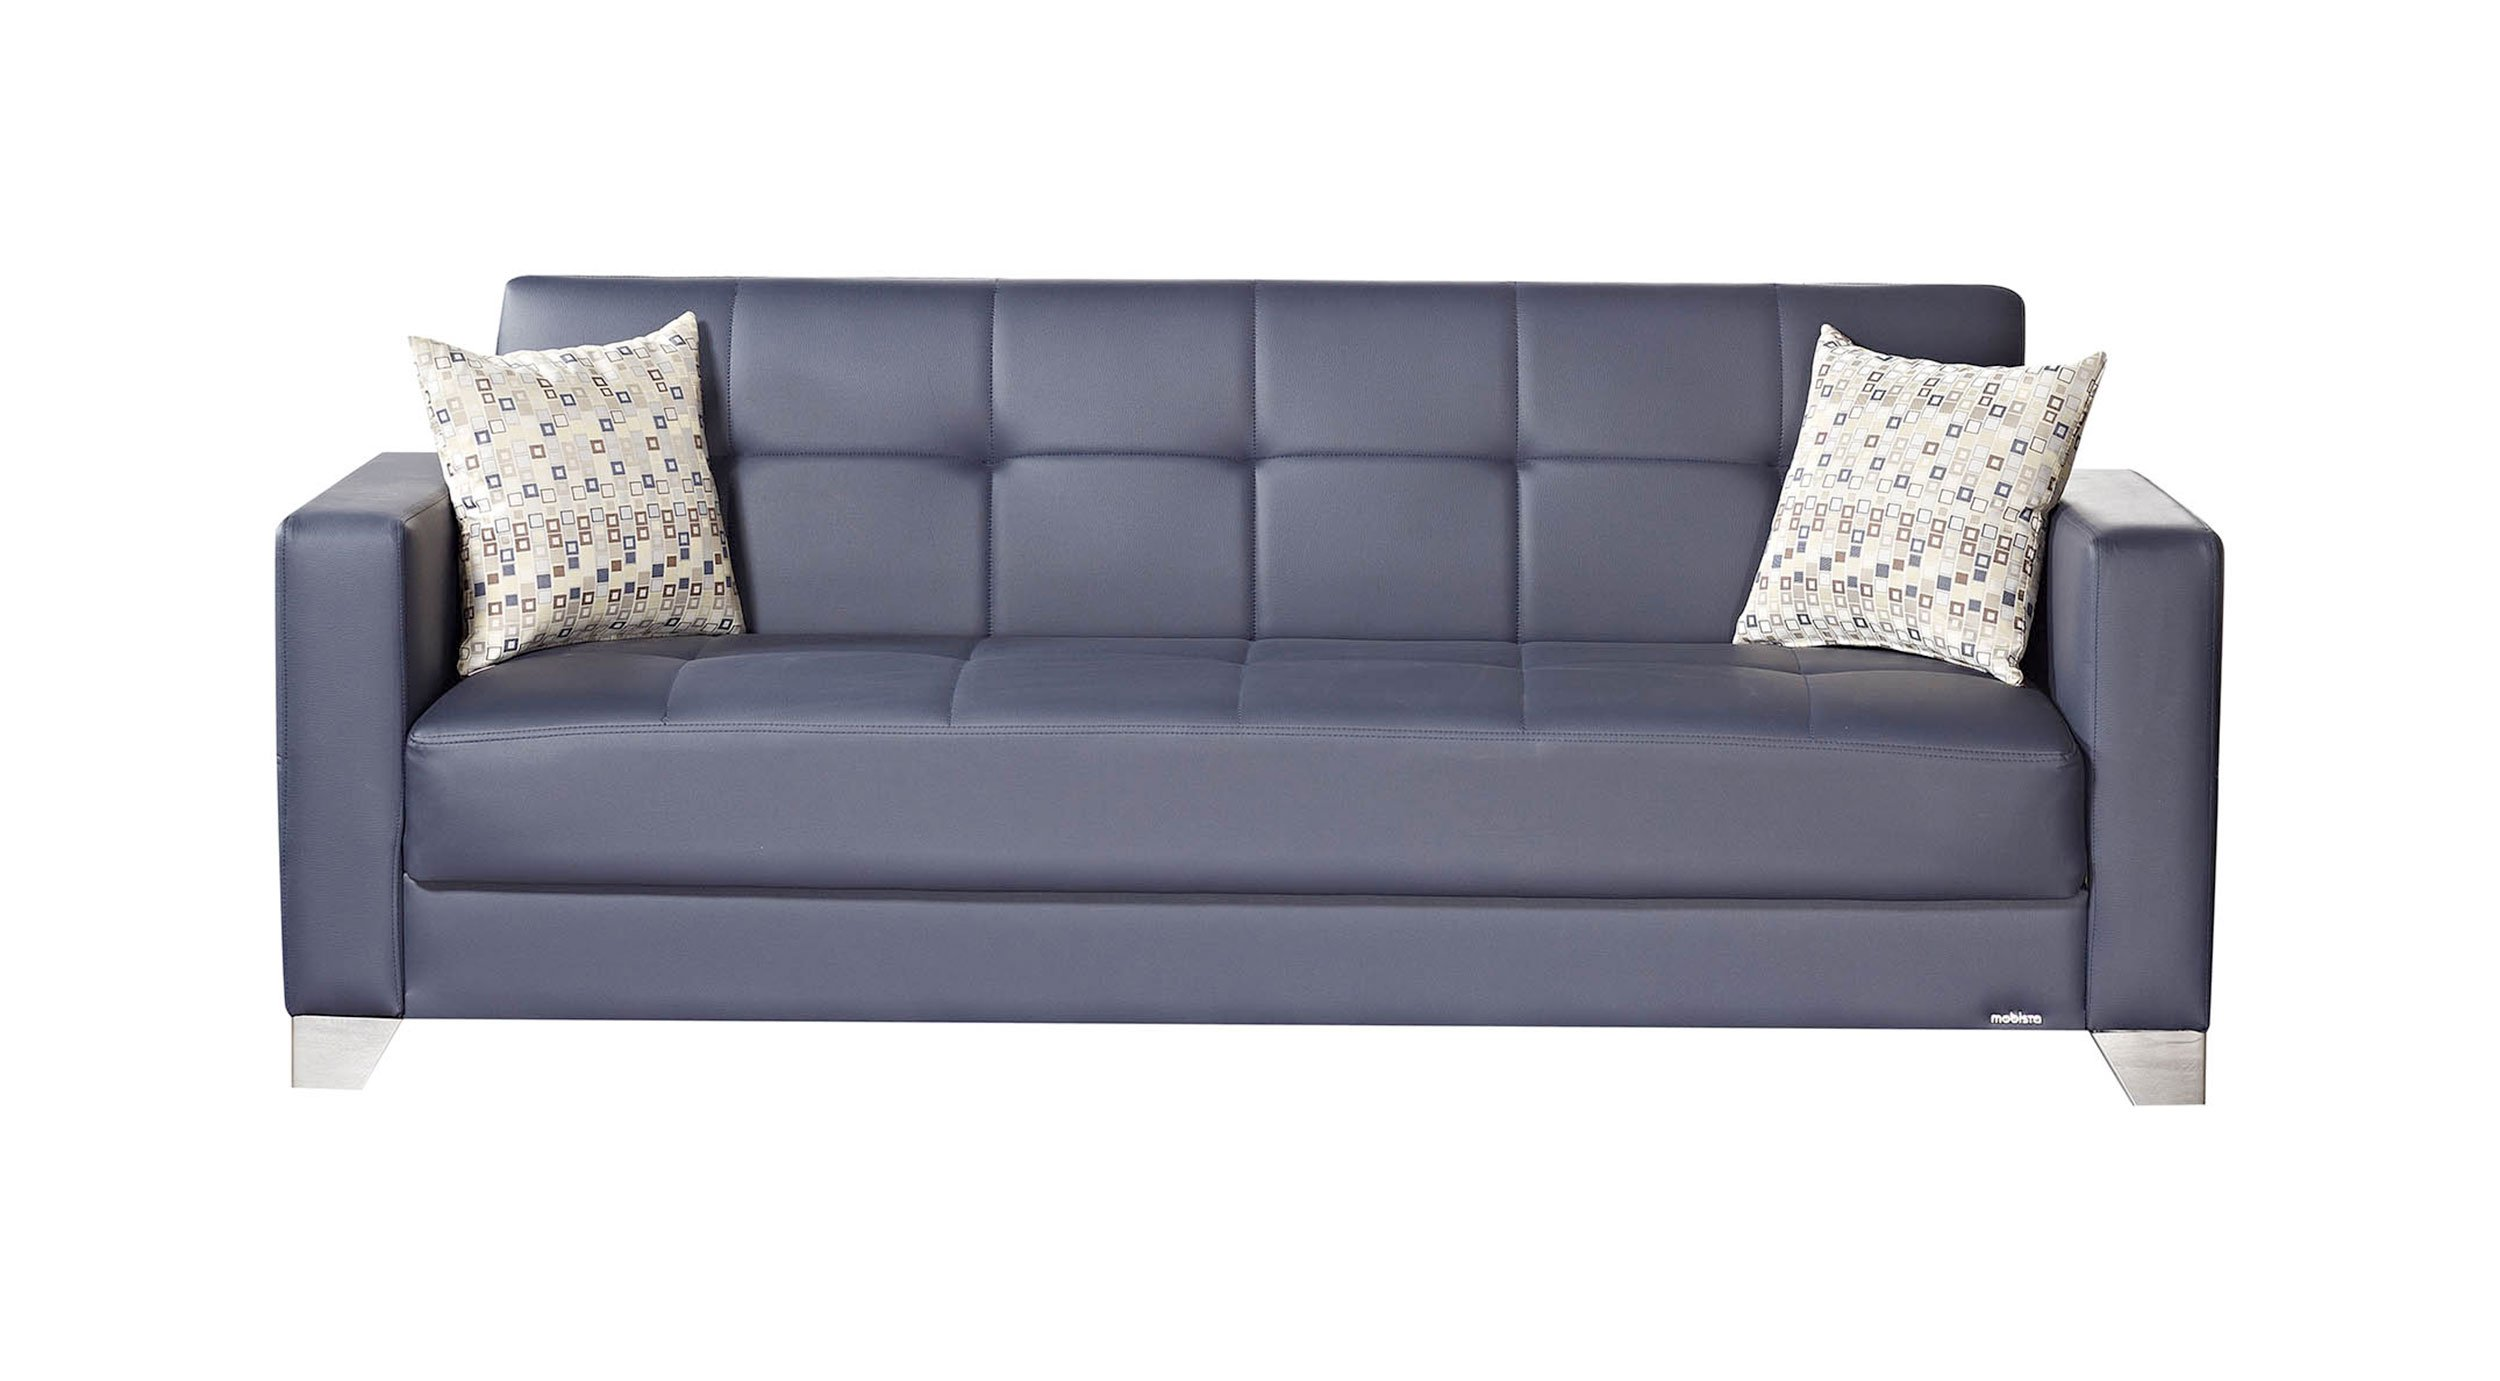 Viva Italia Prestige Navy Blue Leatherette Sofa Bed By Mobista